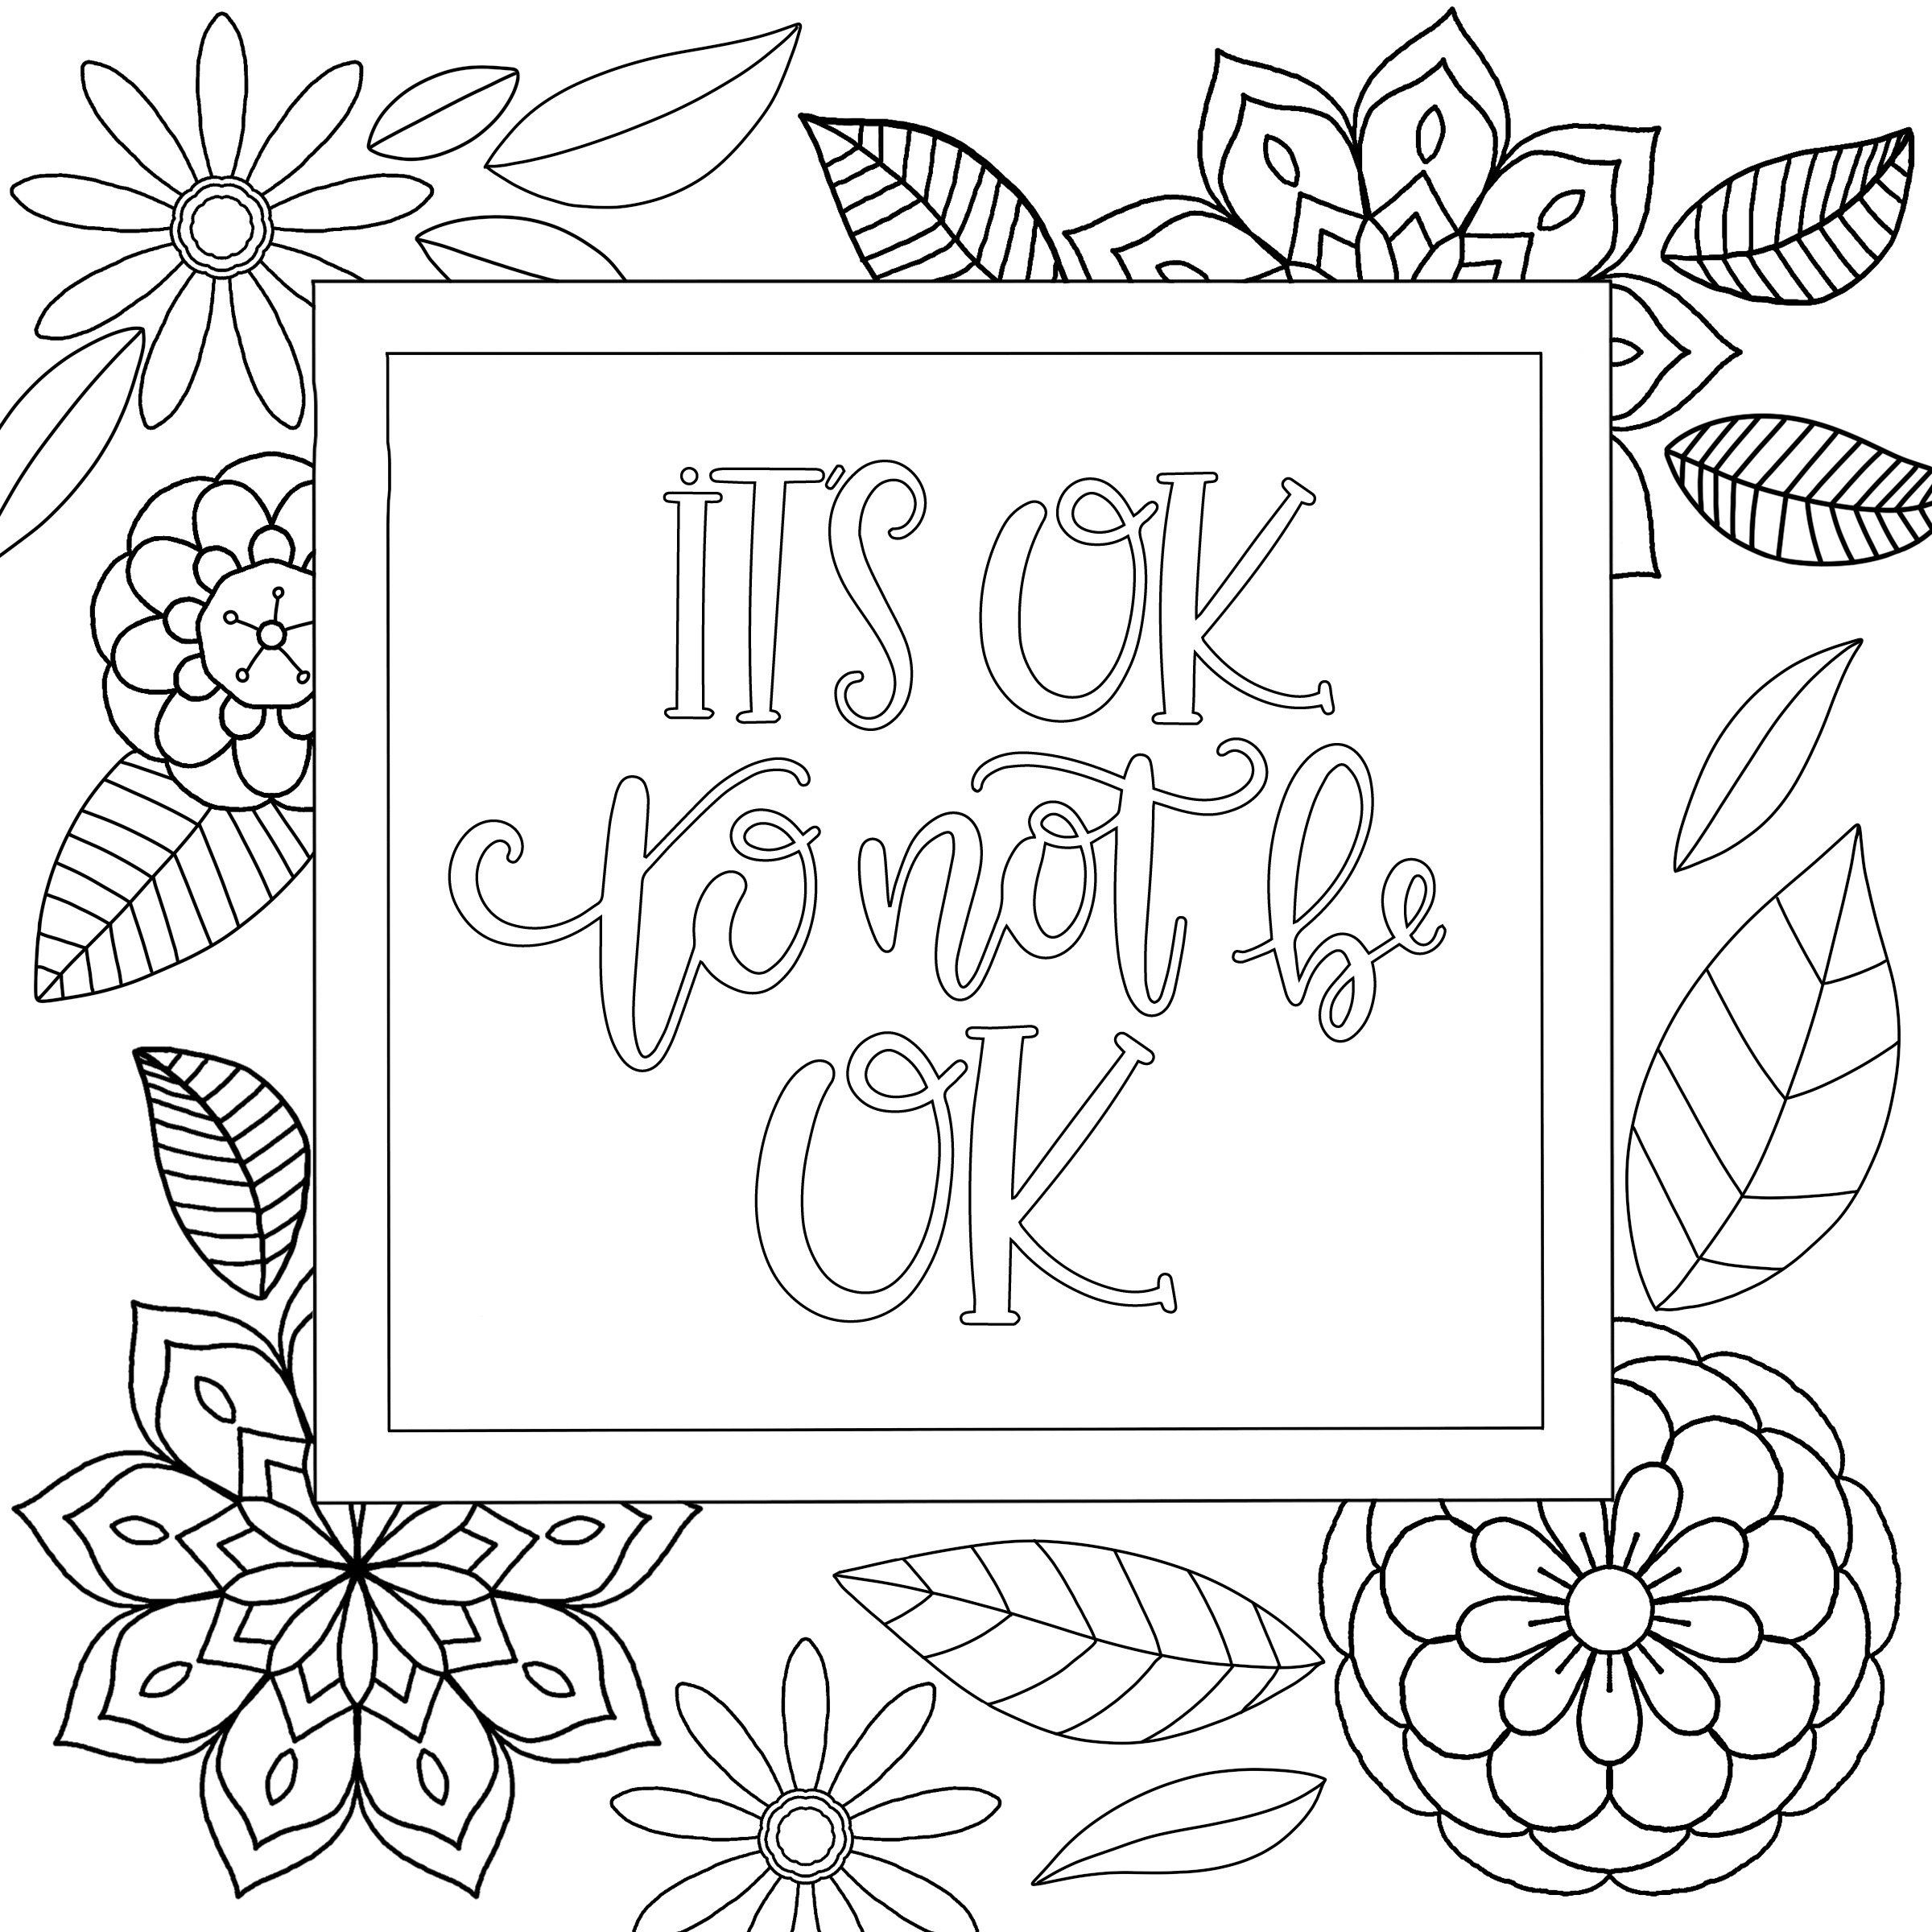 3 Motivational Printable Coloring Pages Zentangle Coloring Etsy Coloring Pages Inspirational Love Coloring Pages Quote Coloring Pages